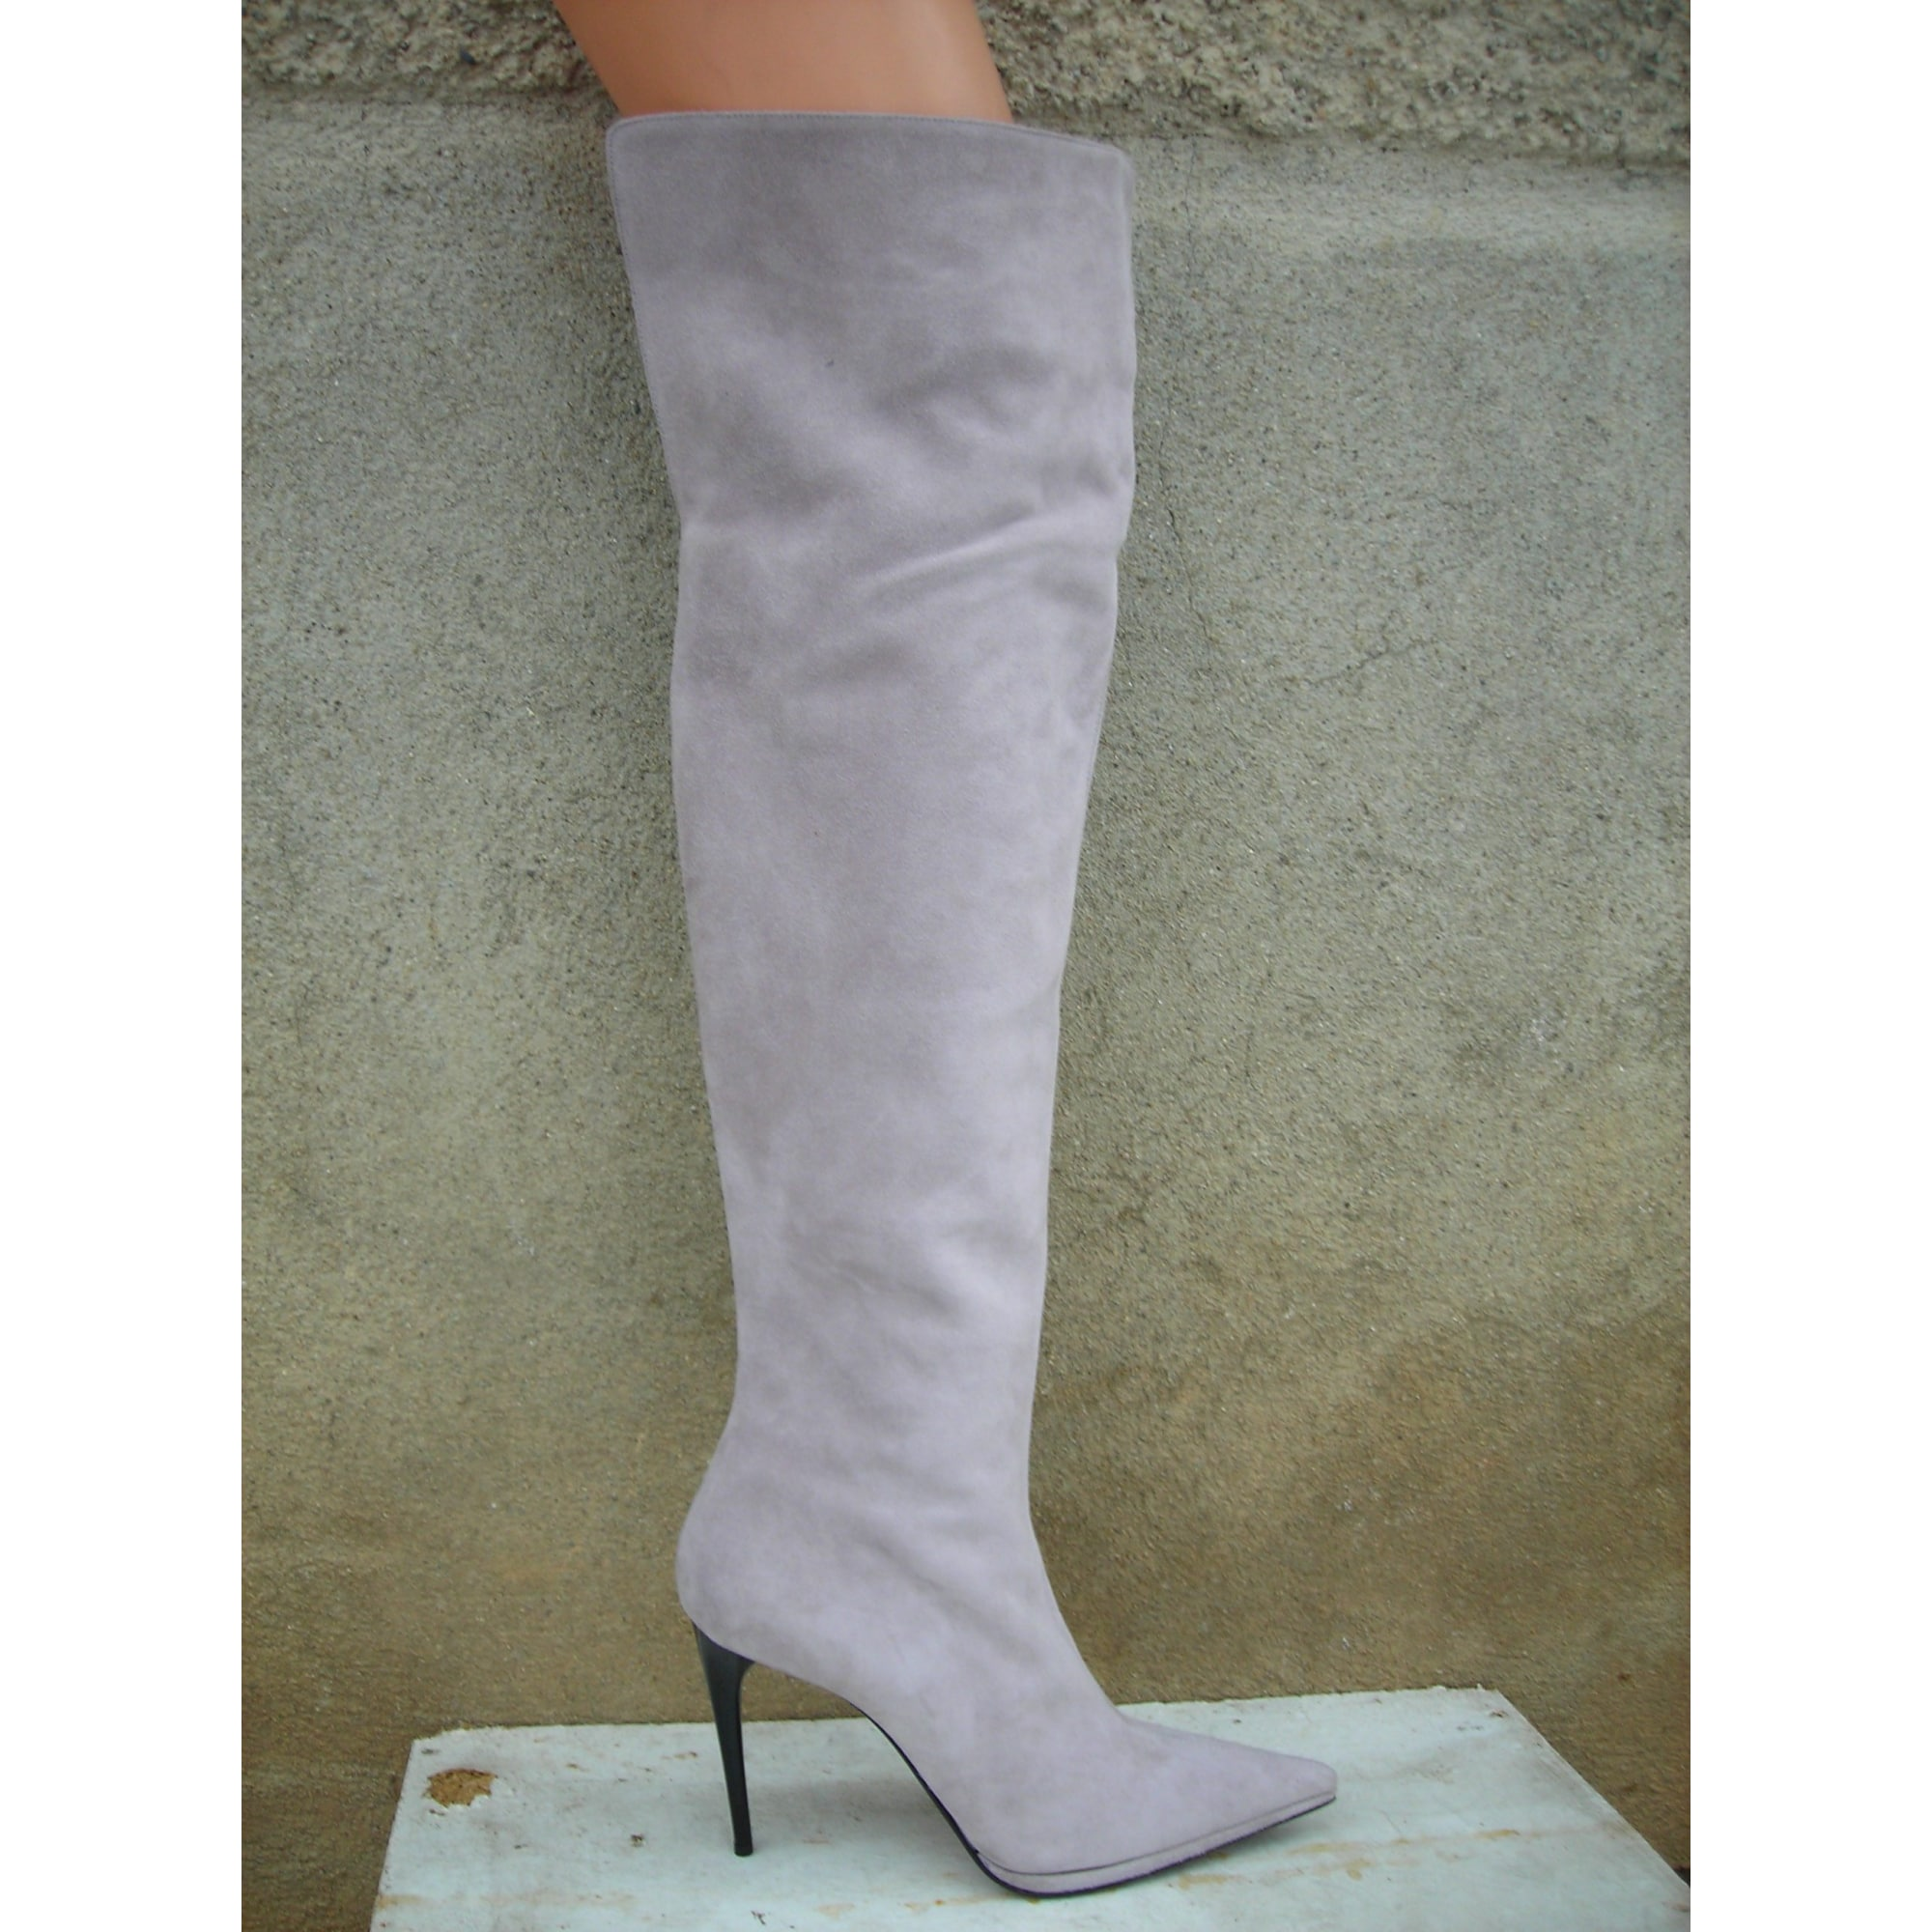 Le Silla Boots Thigh High Boots Le Silla 41 Purple 3643076